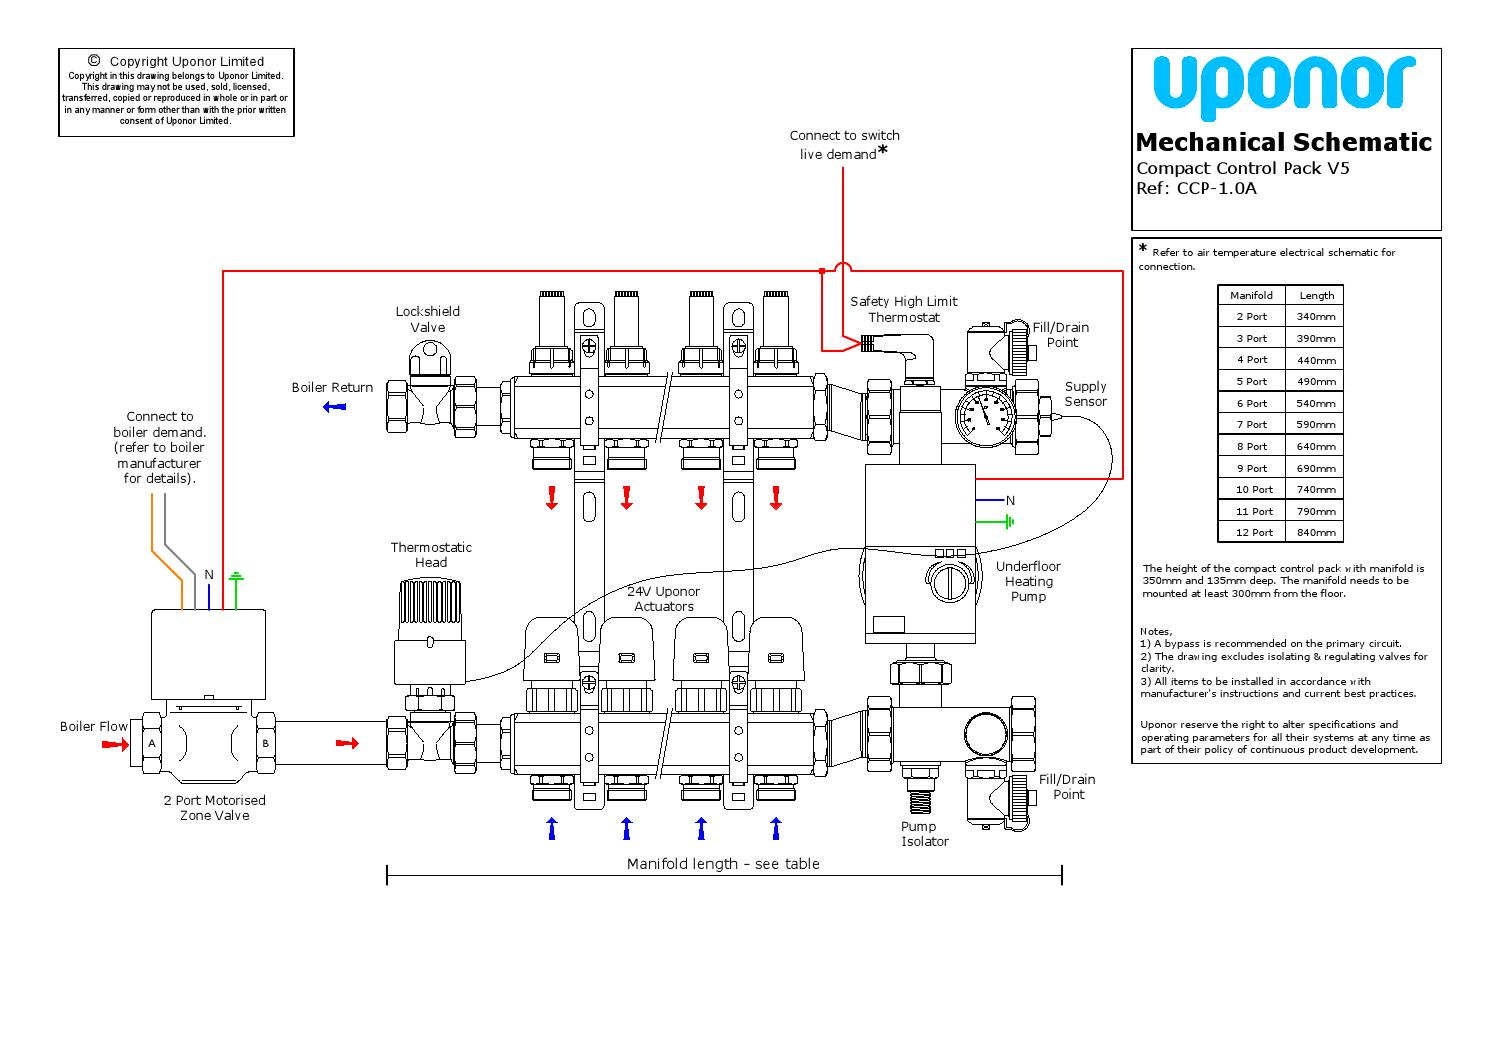 Myson Motorised Valve Wiring Diagram